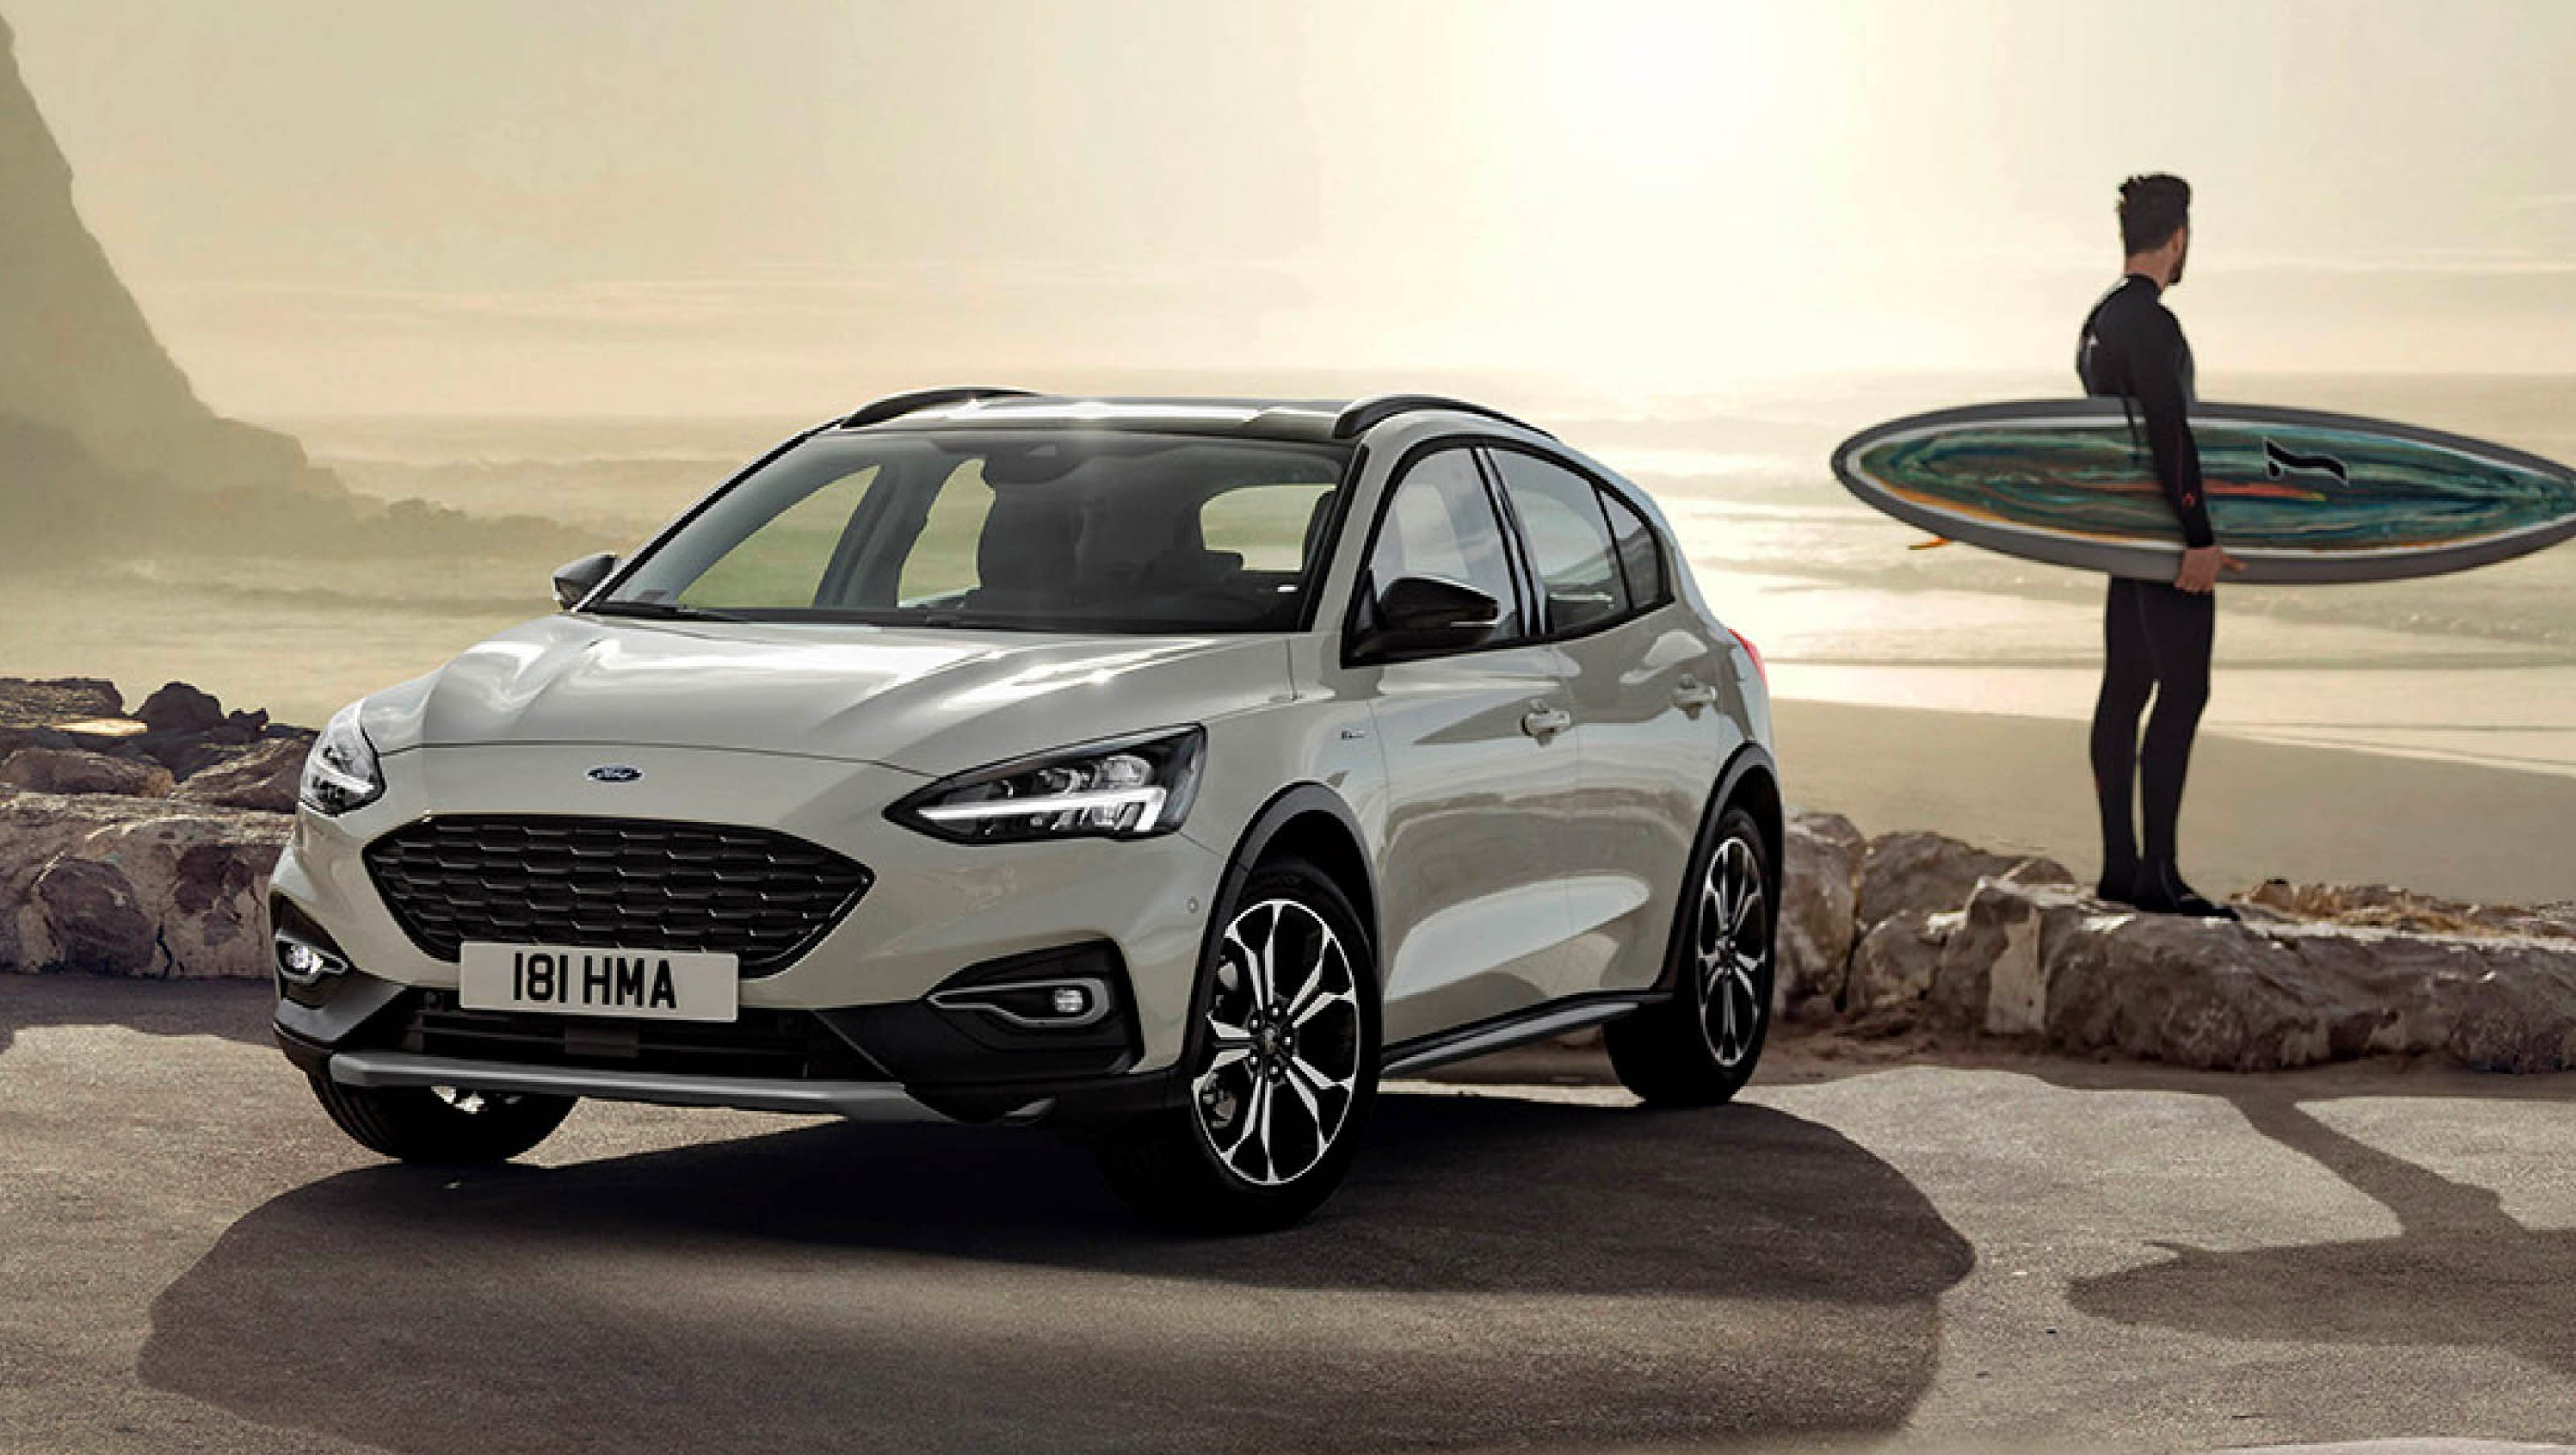 Ford Focus for 2019 gets roomier, more tech-forward; no longer made in US